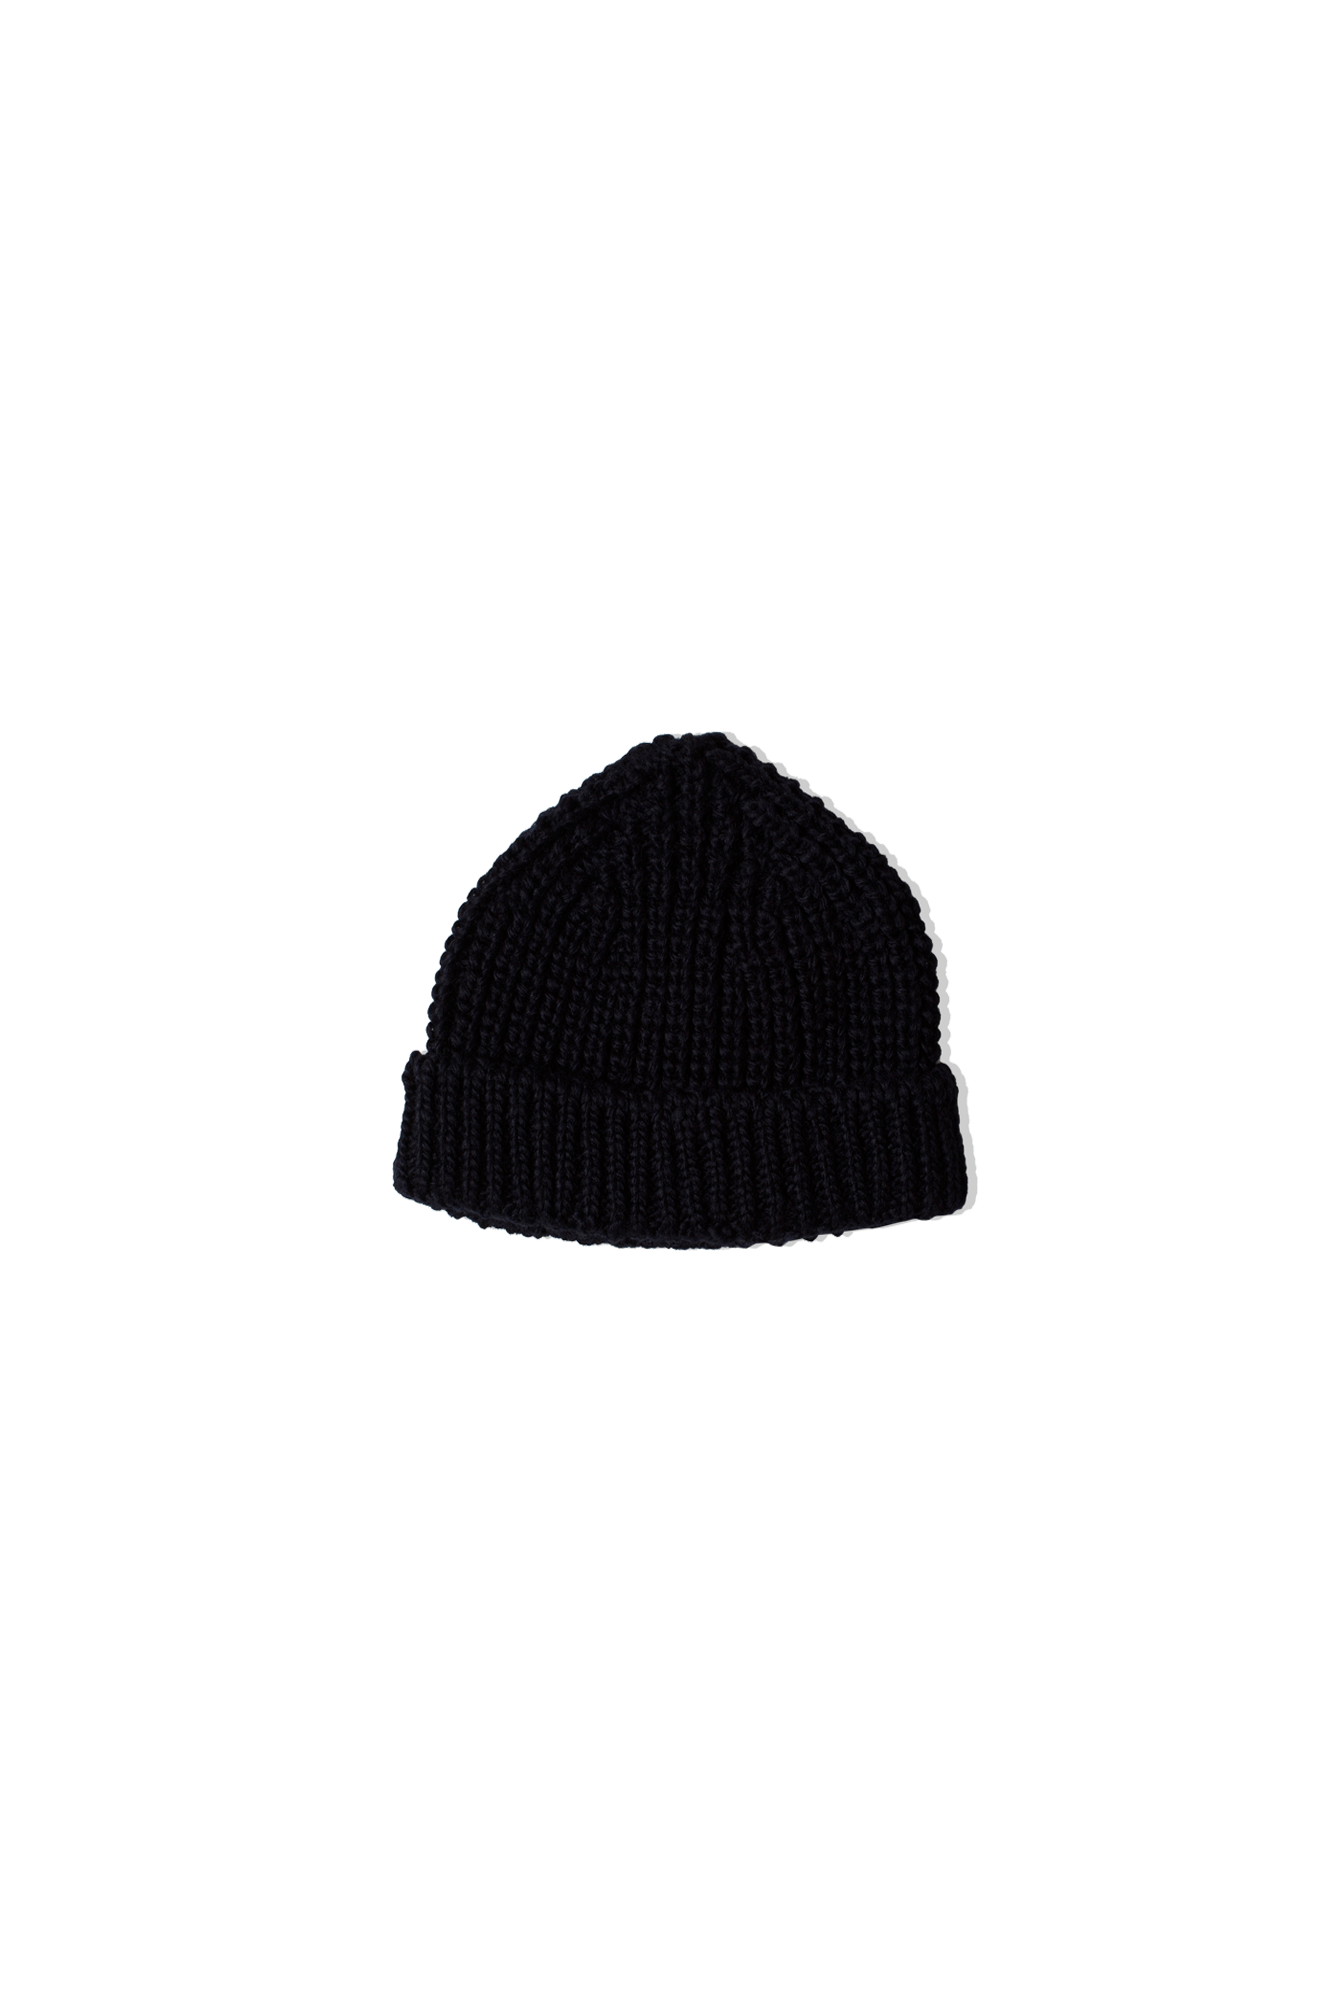 Câbleami Cappelli WOOL SHORT W/CAP Blu 031-20AW#000#NVY#OS - One Block Down